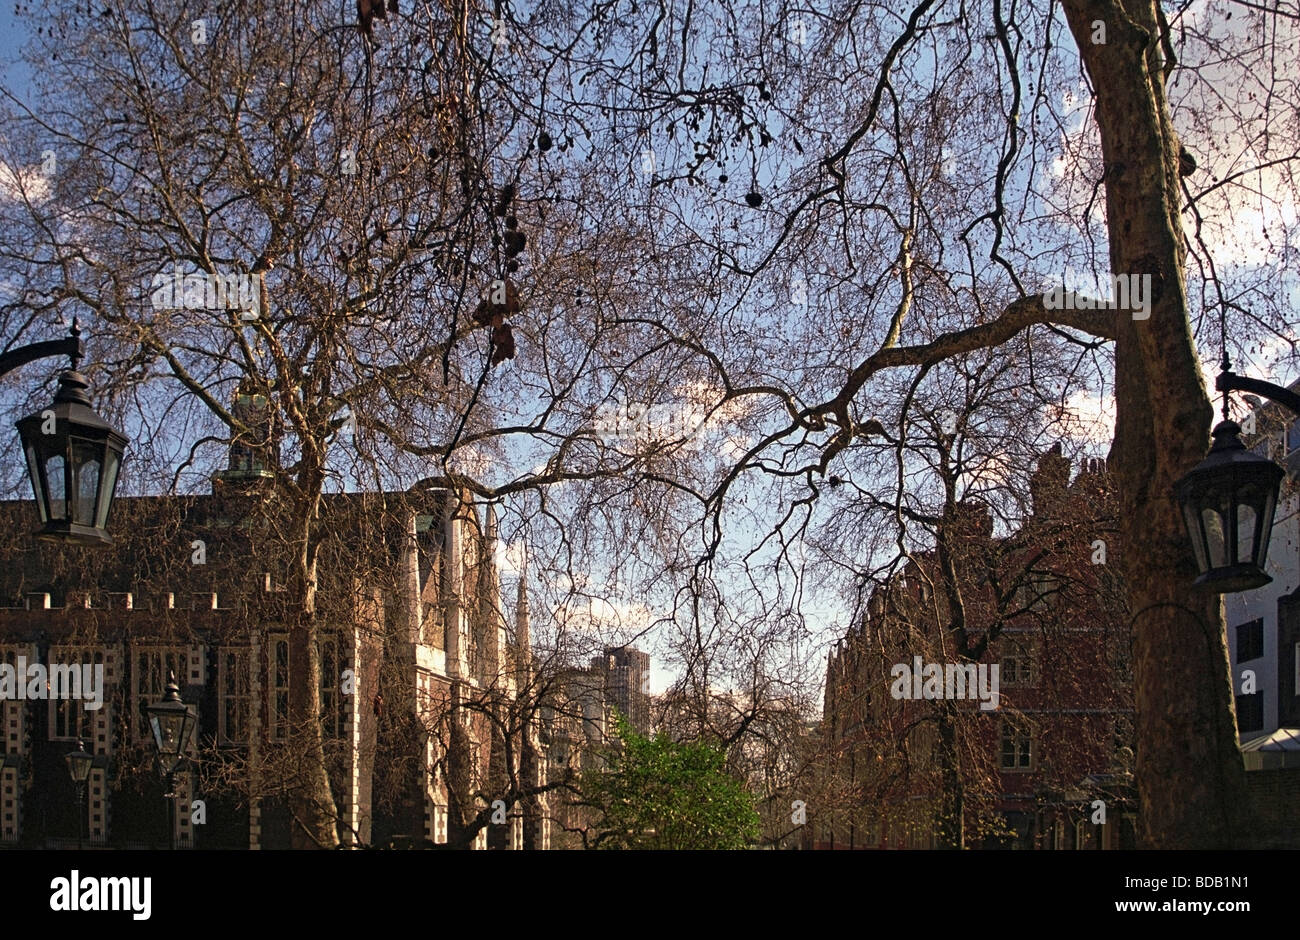 Fountain Court in the Spring, Legal London - Stock Image